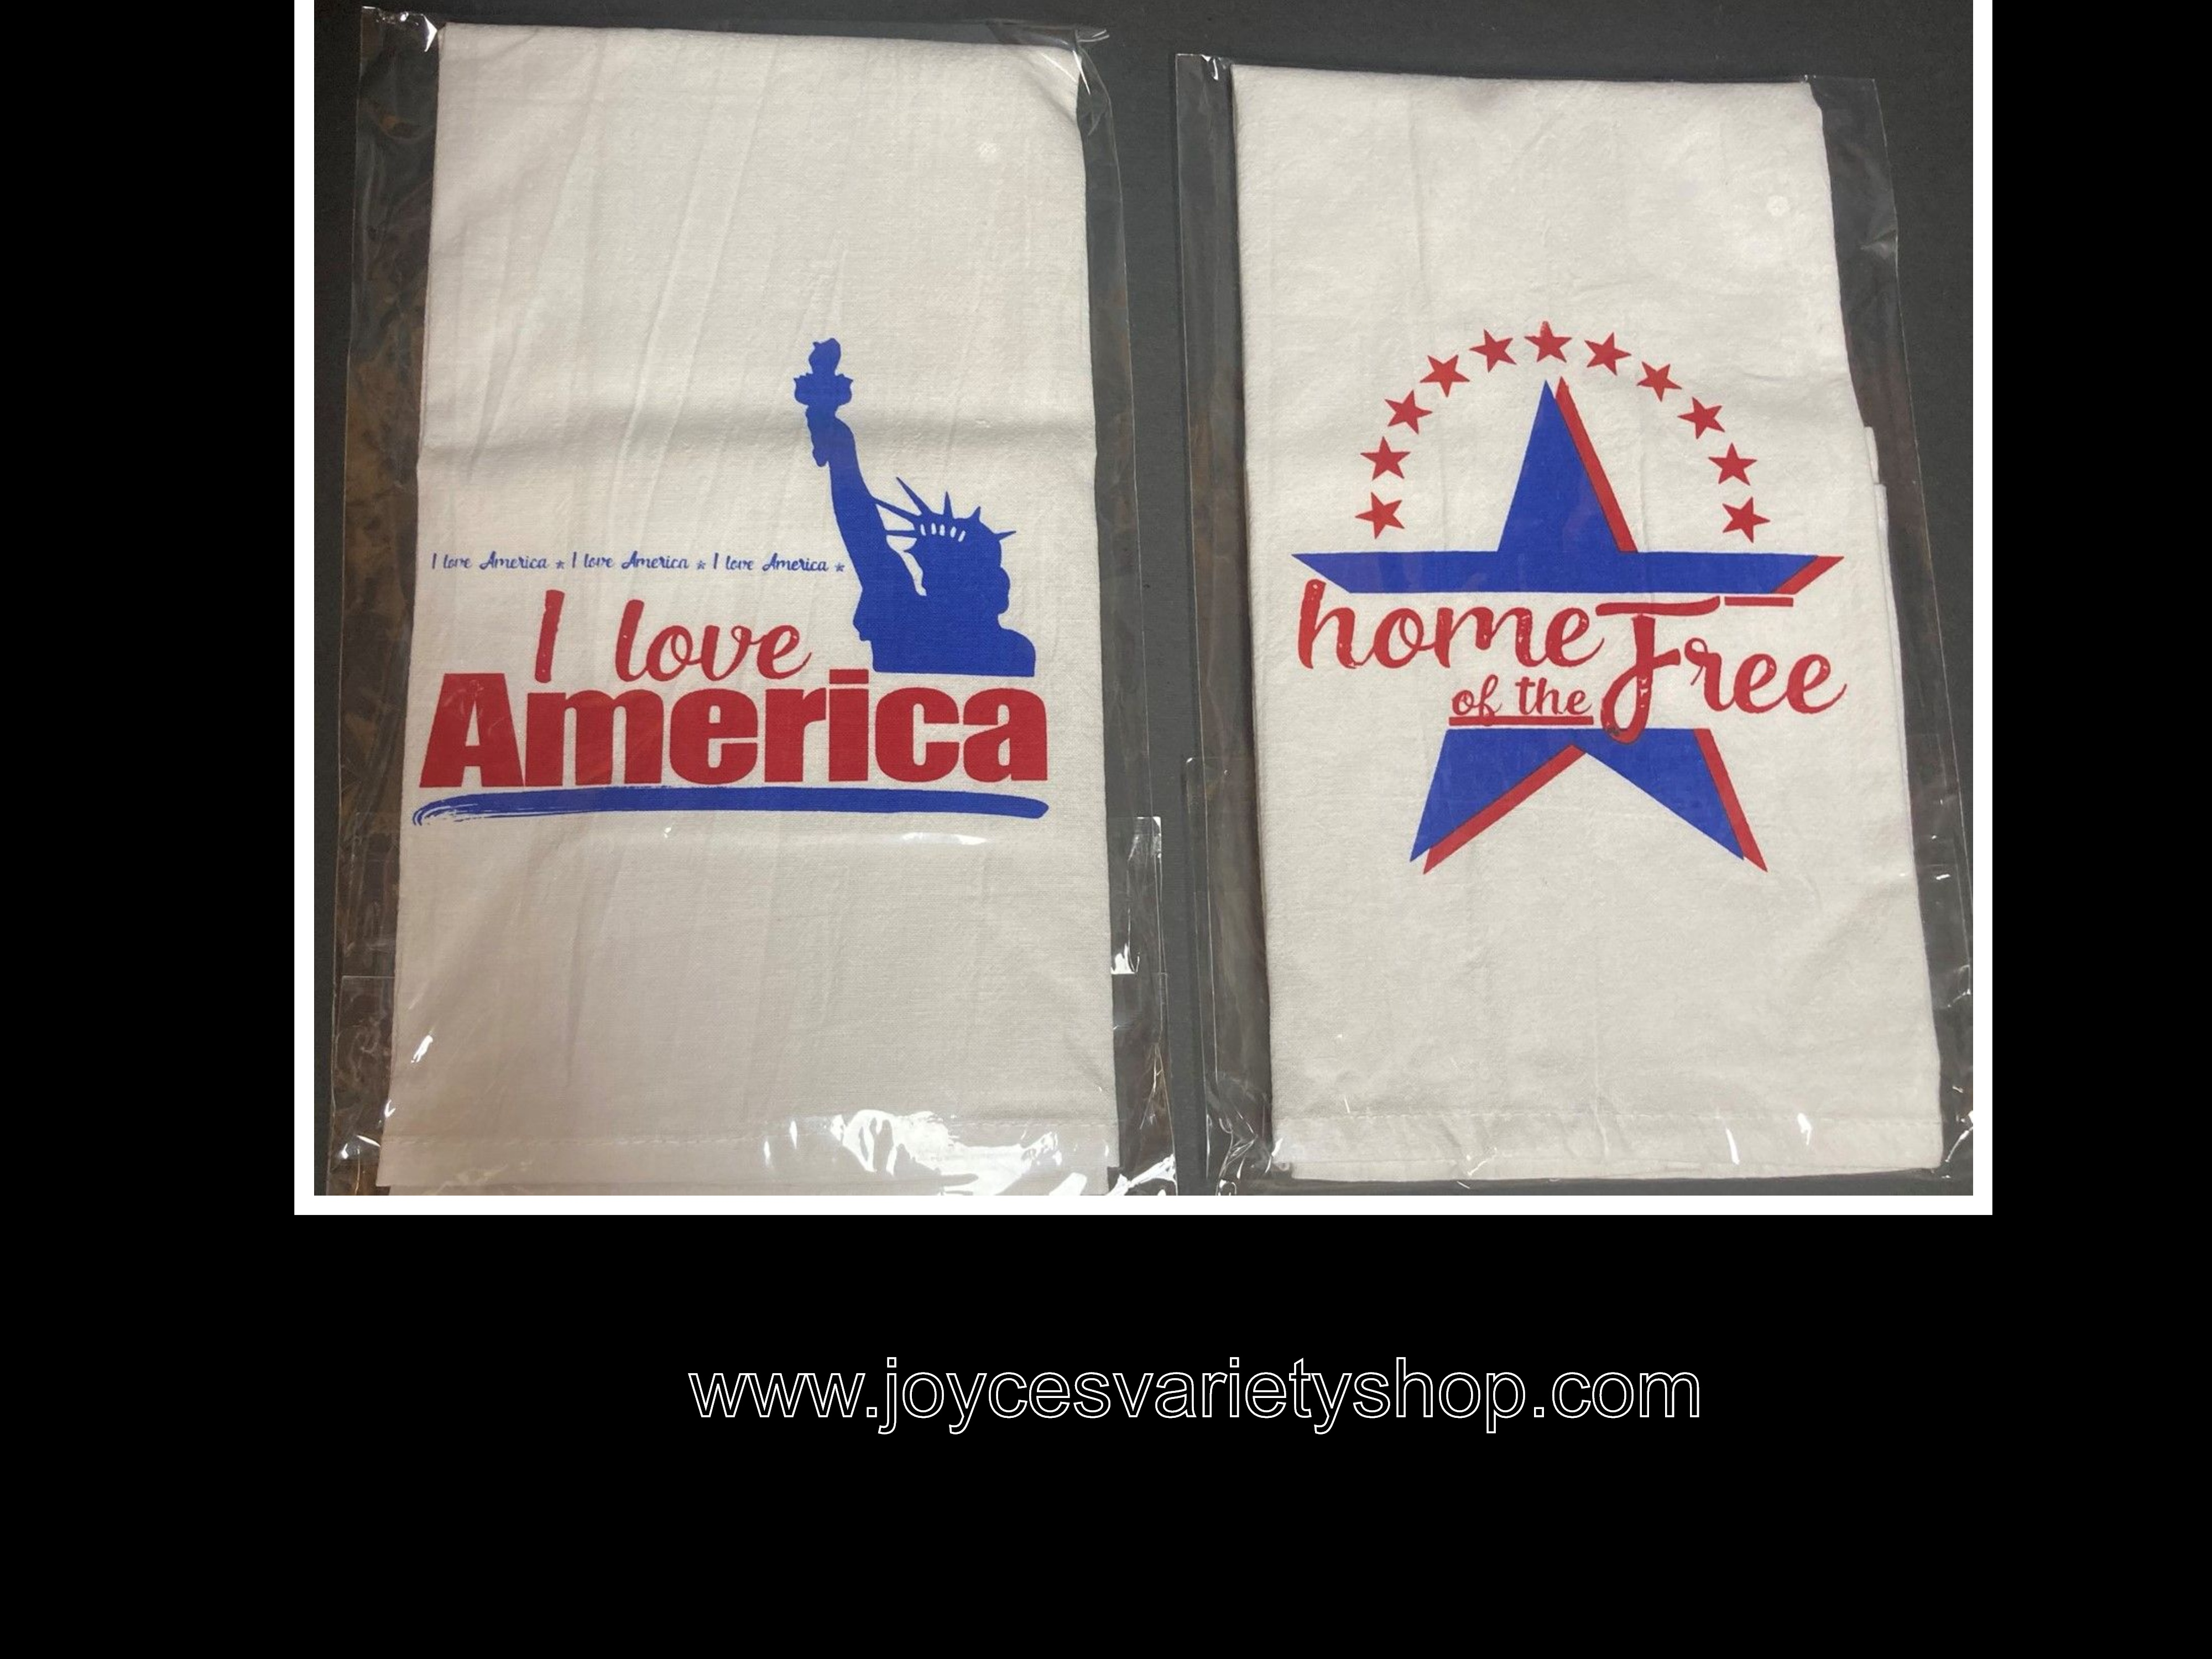 "Flour Sack Towel Absorbent Linen 28"" x 28"" Love America or Home of The Free"